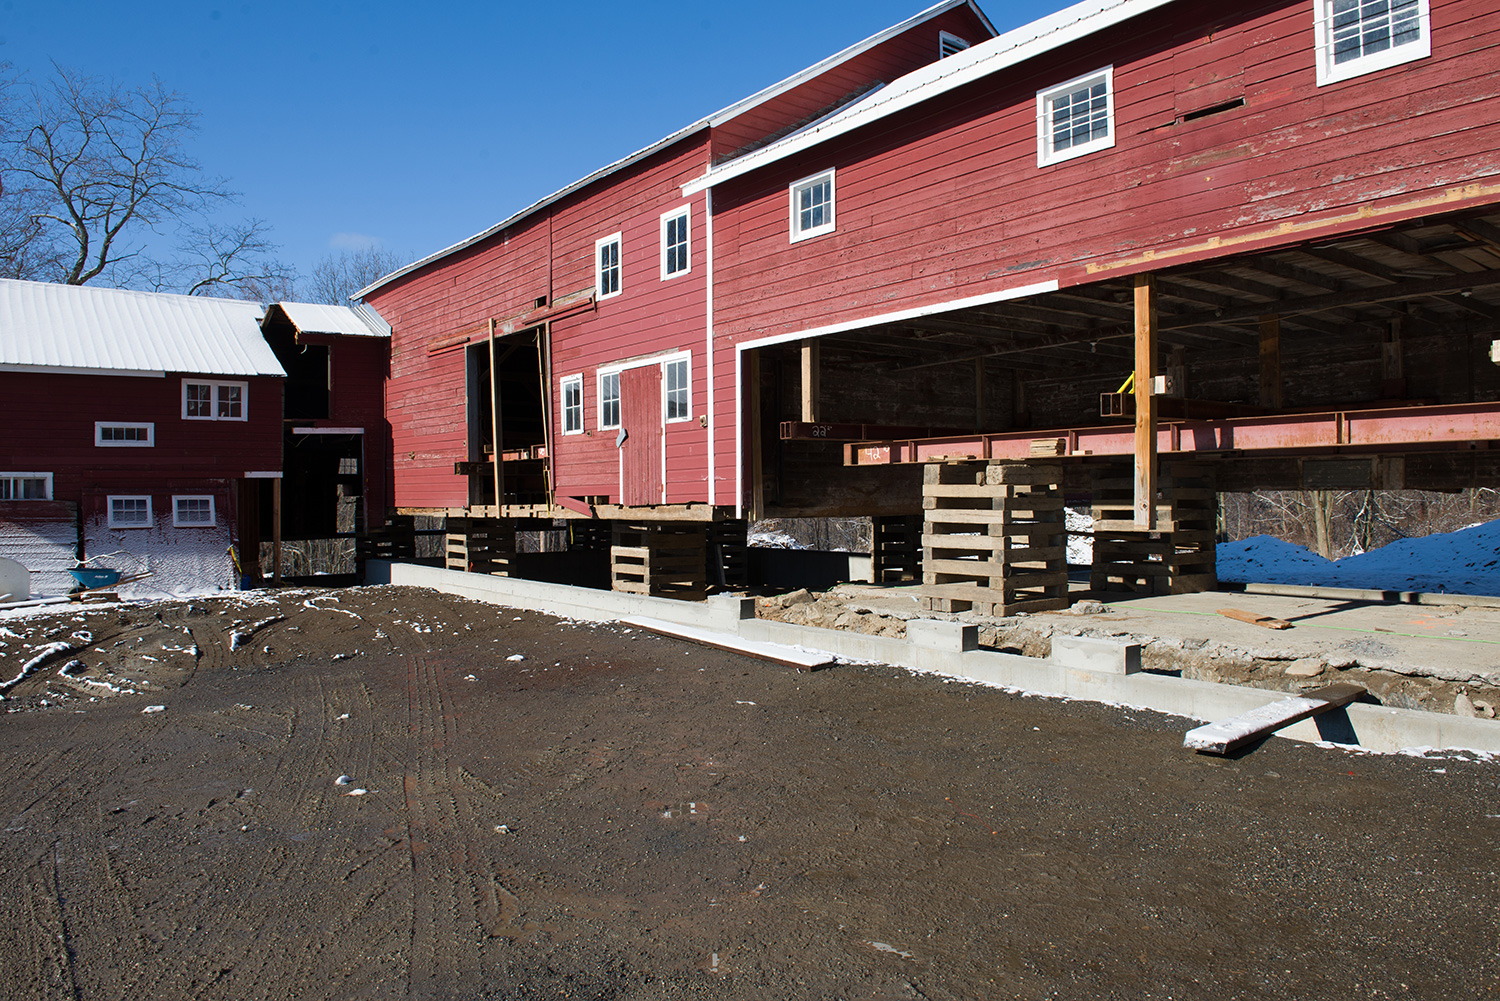 Foundation poured under Spencertown barn. Spencertown, NY.